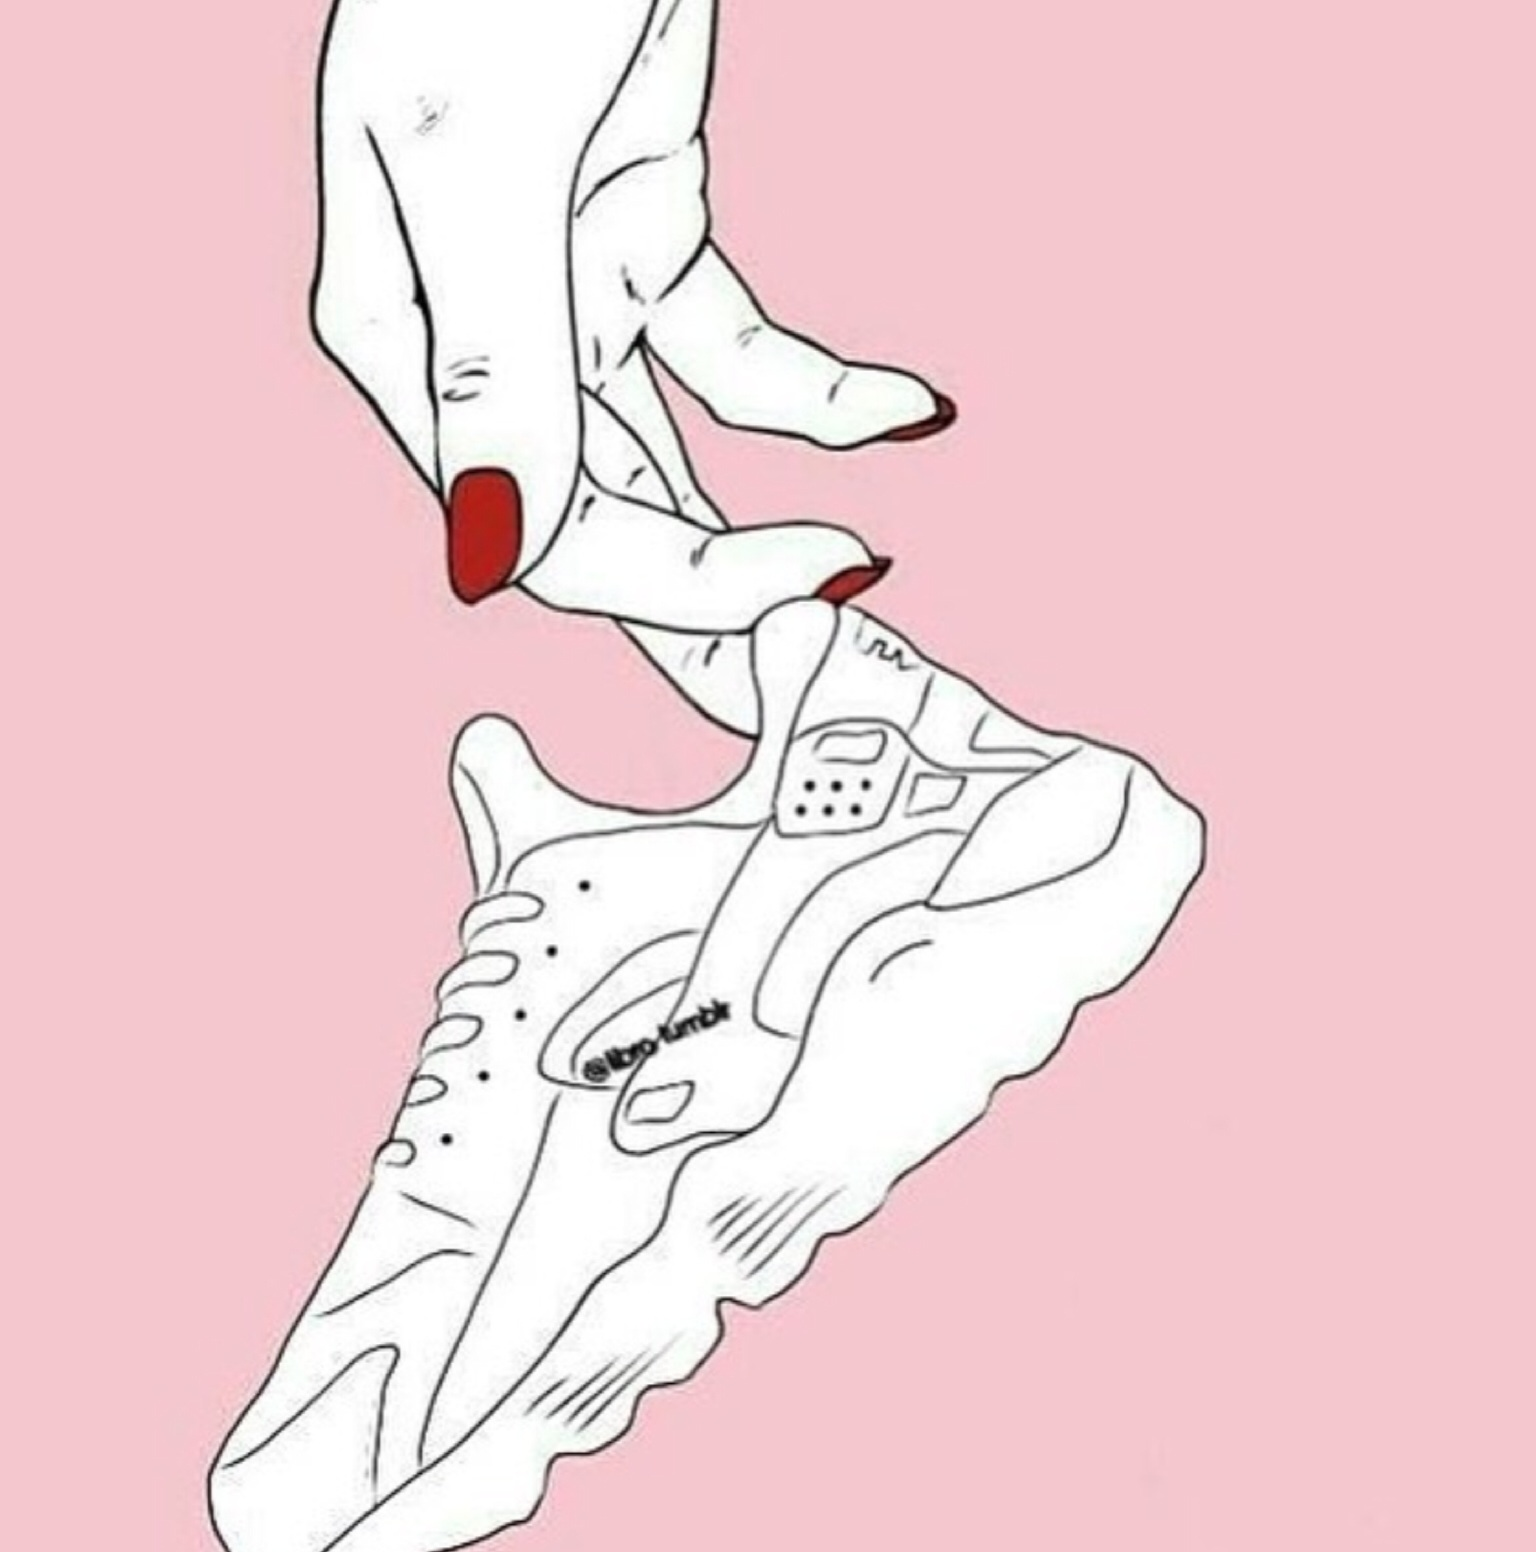 hand, nails, outline, pink, sneaker